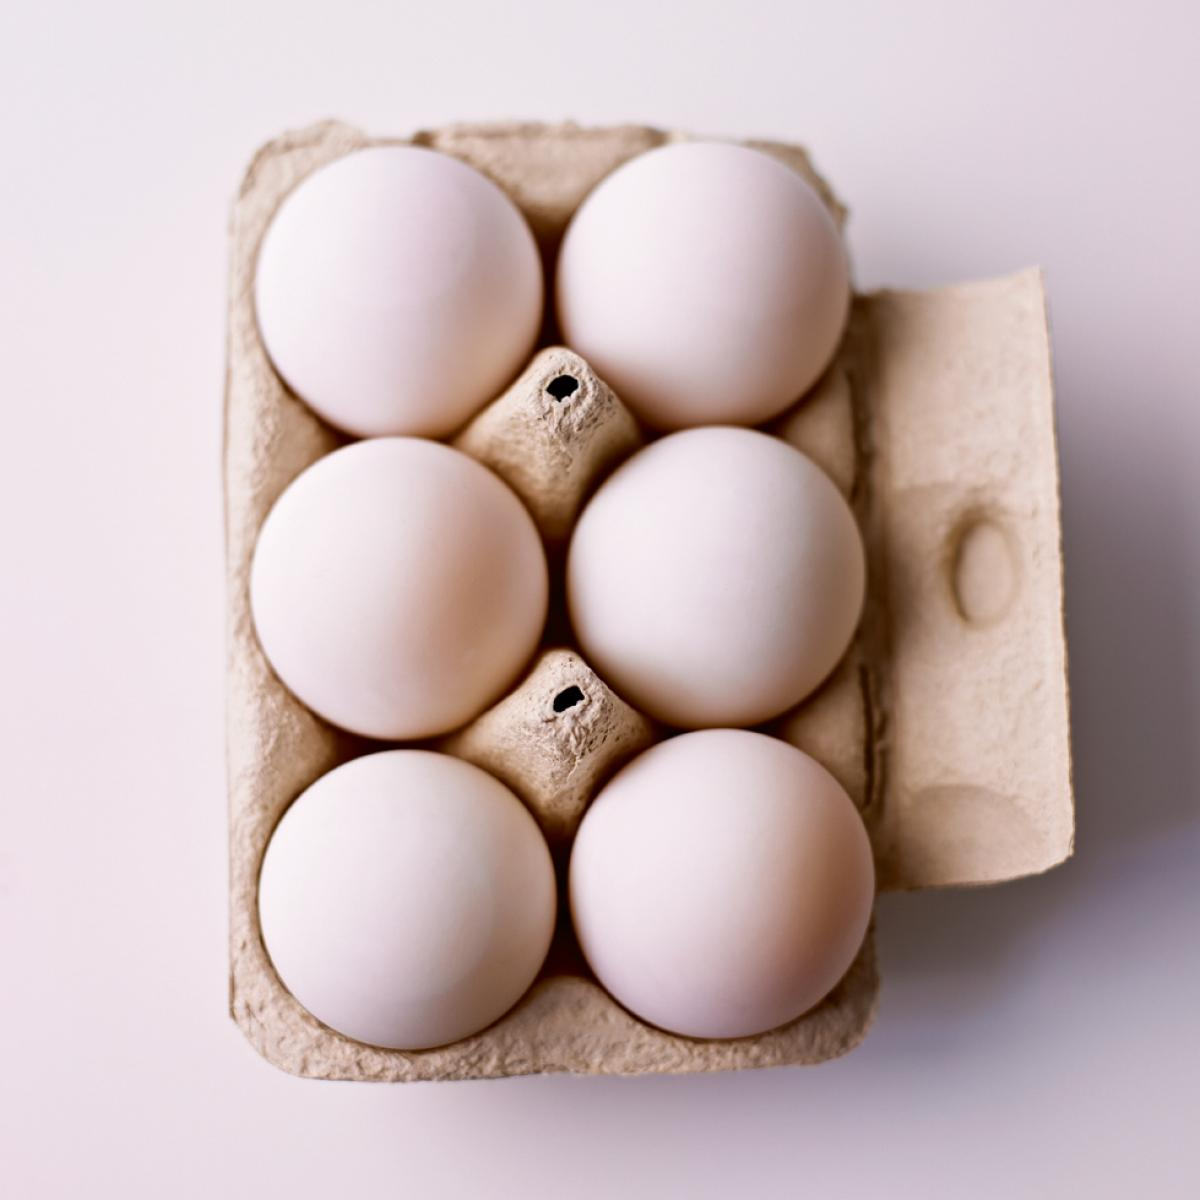 A picture of Delia's How to tell how fresh an egg is how to cook guide